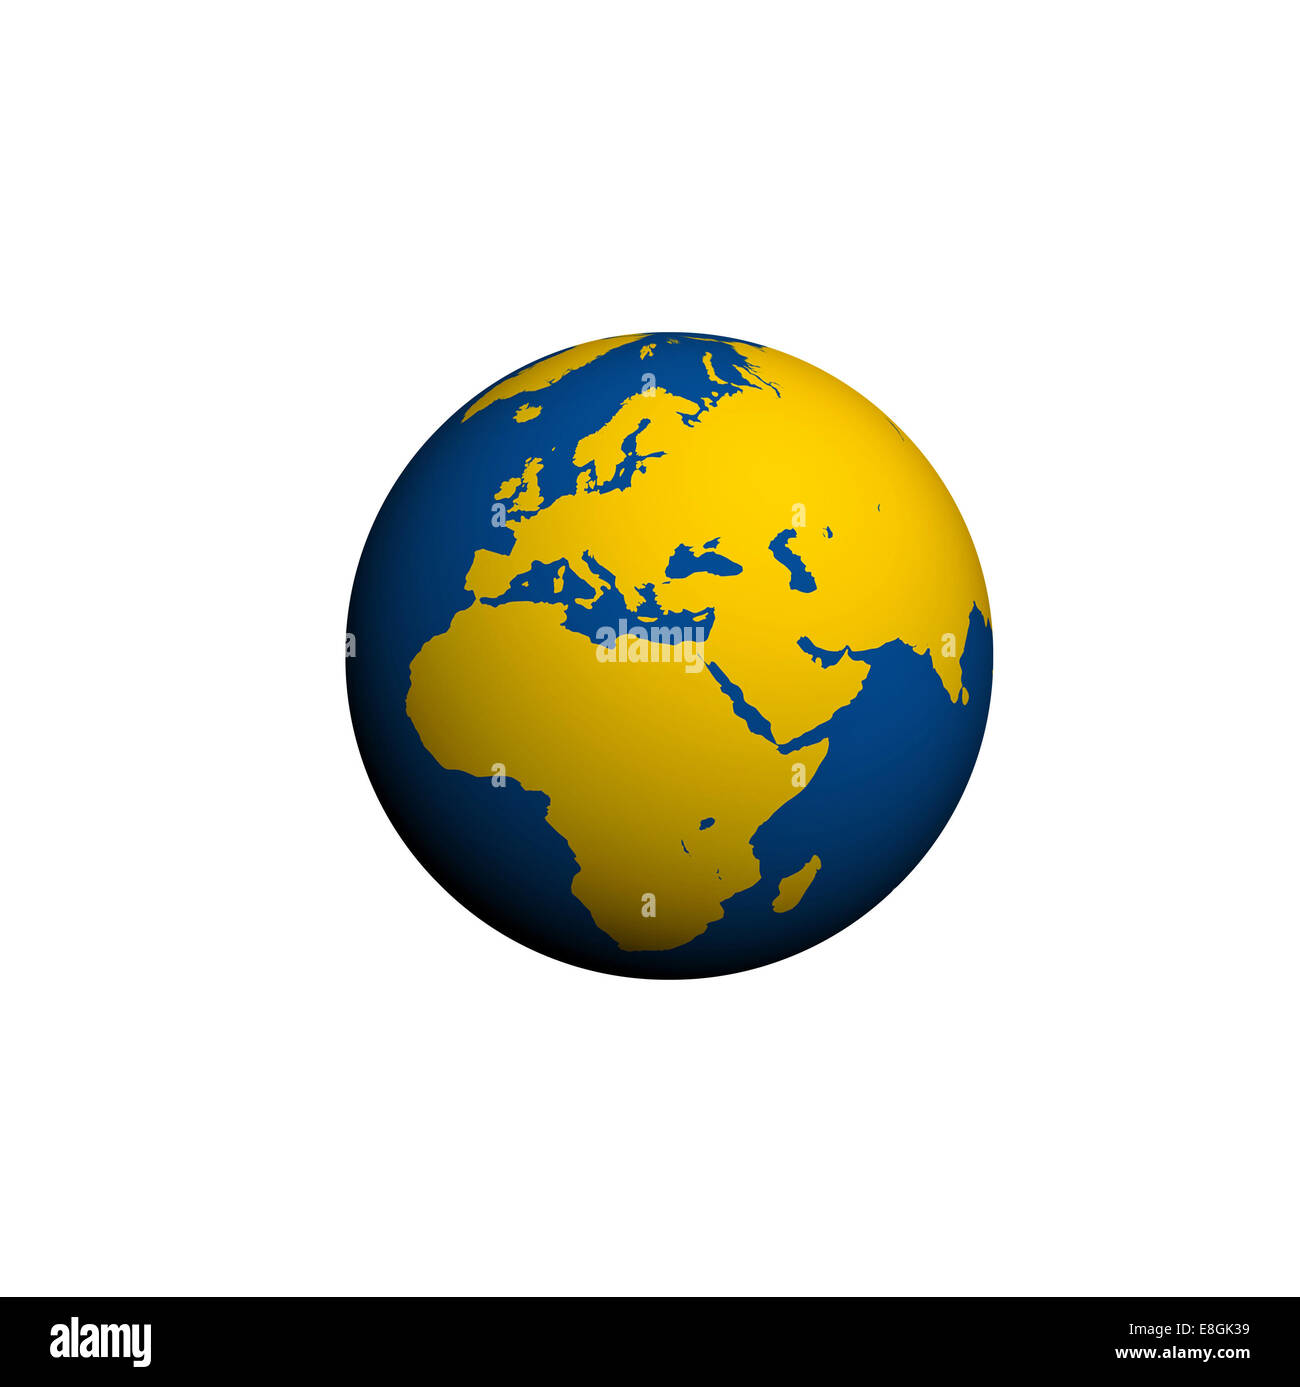 Digitally generated image of planet earth - Stock Image